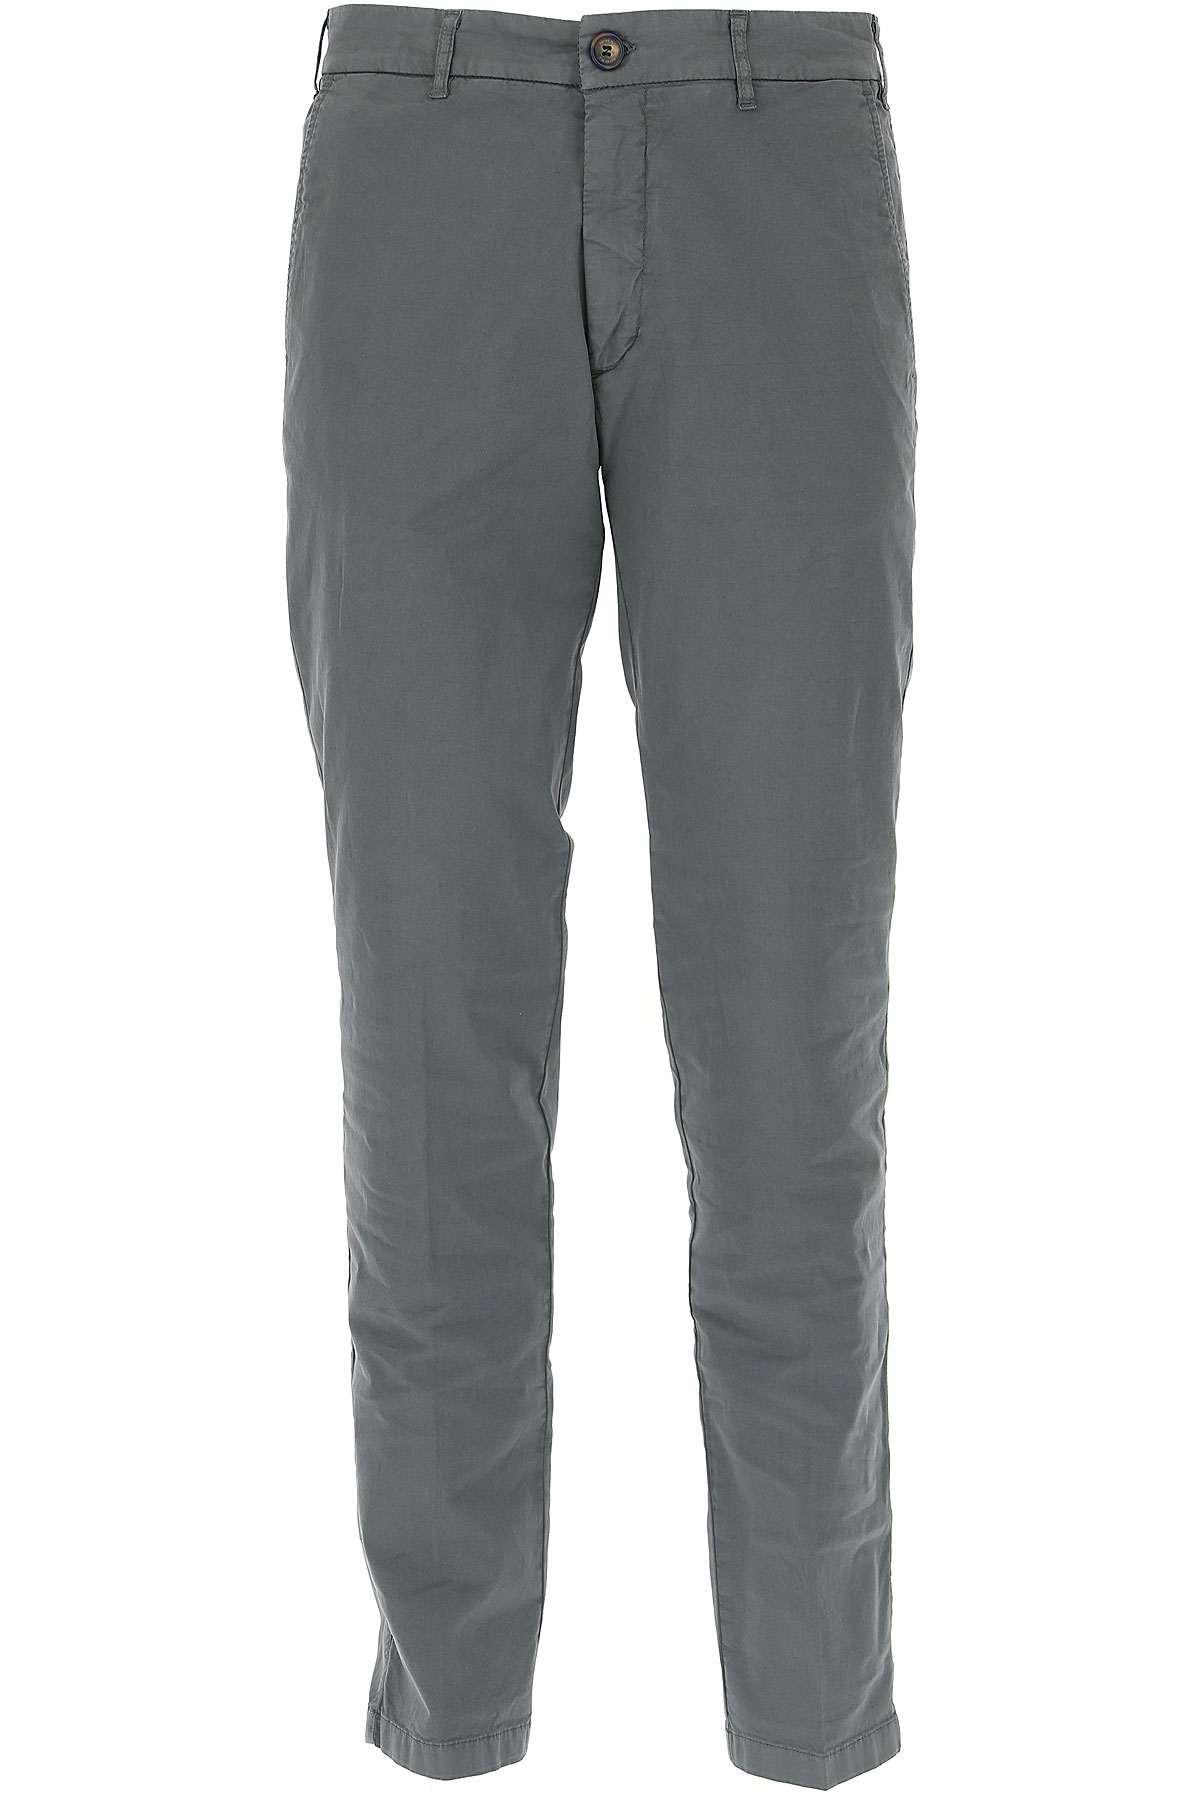 J.W. Brine Pants for Men, Asphalt Grey, Cotton, 2019, 32 38 40